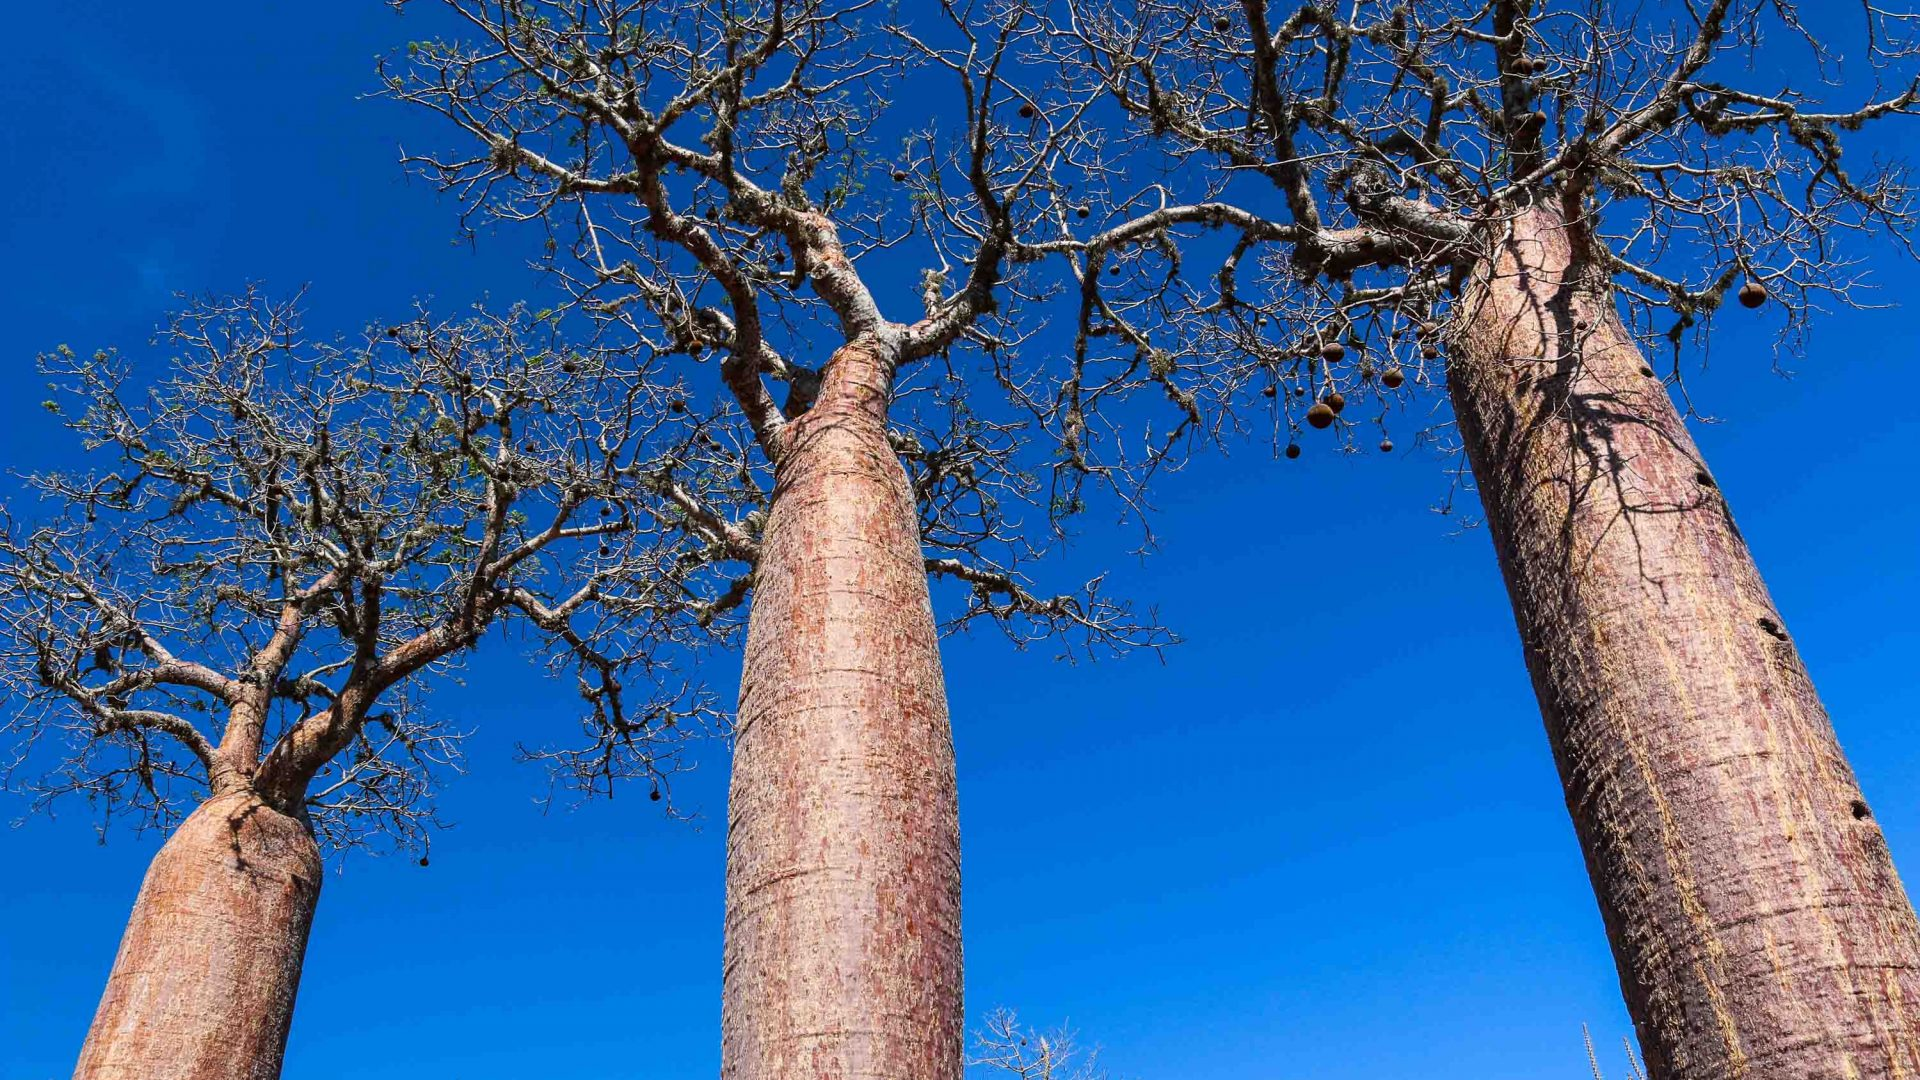 Baobab trees in the spiny forests of Ifaty, southwestern Madagascar.